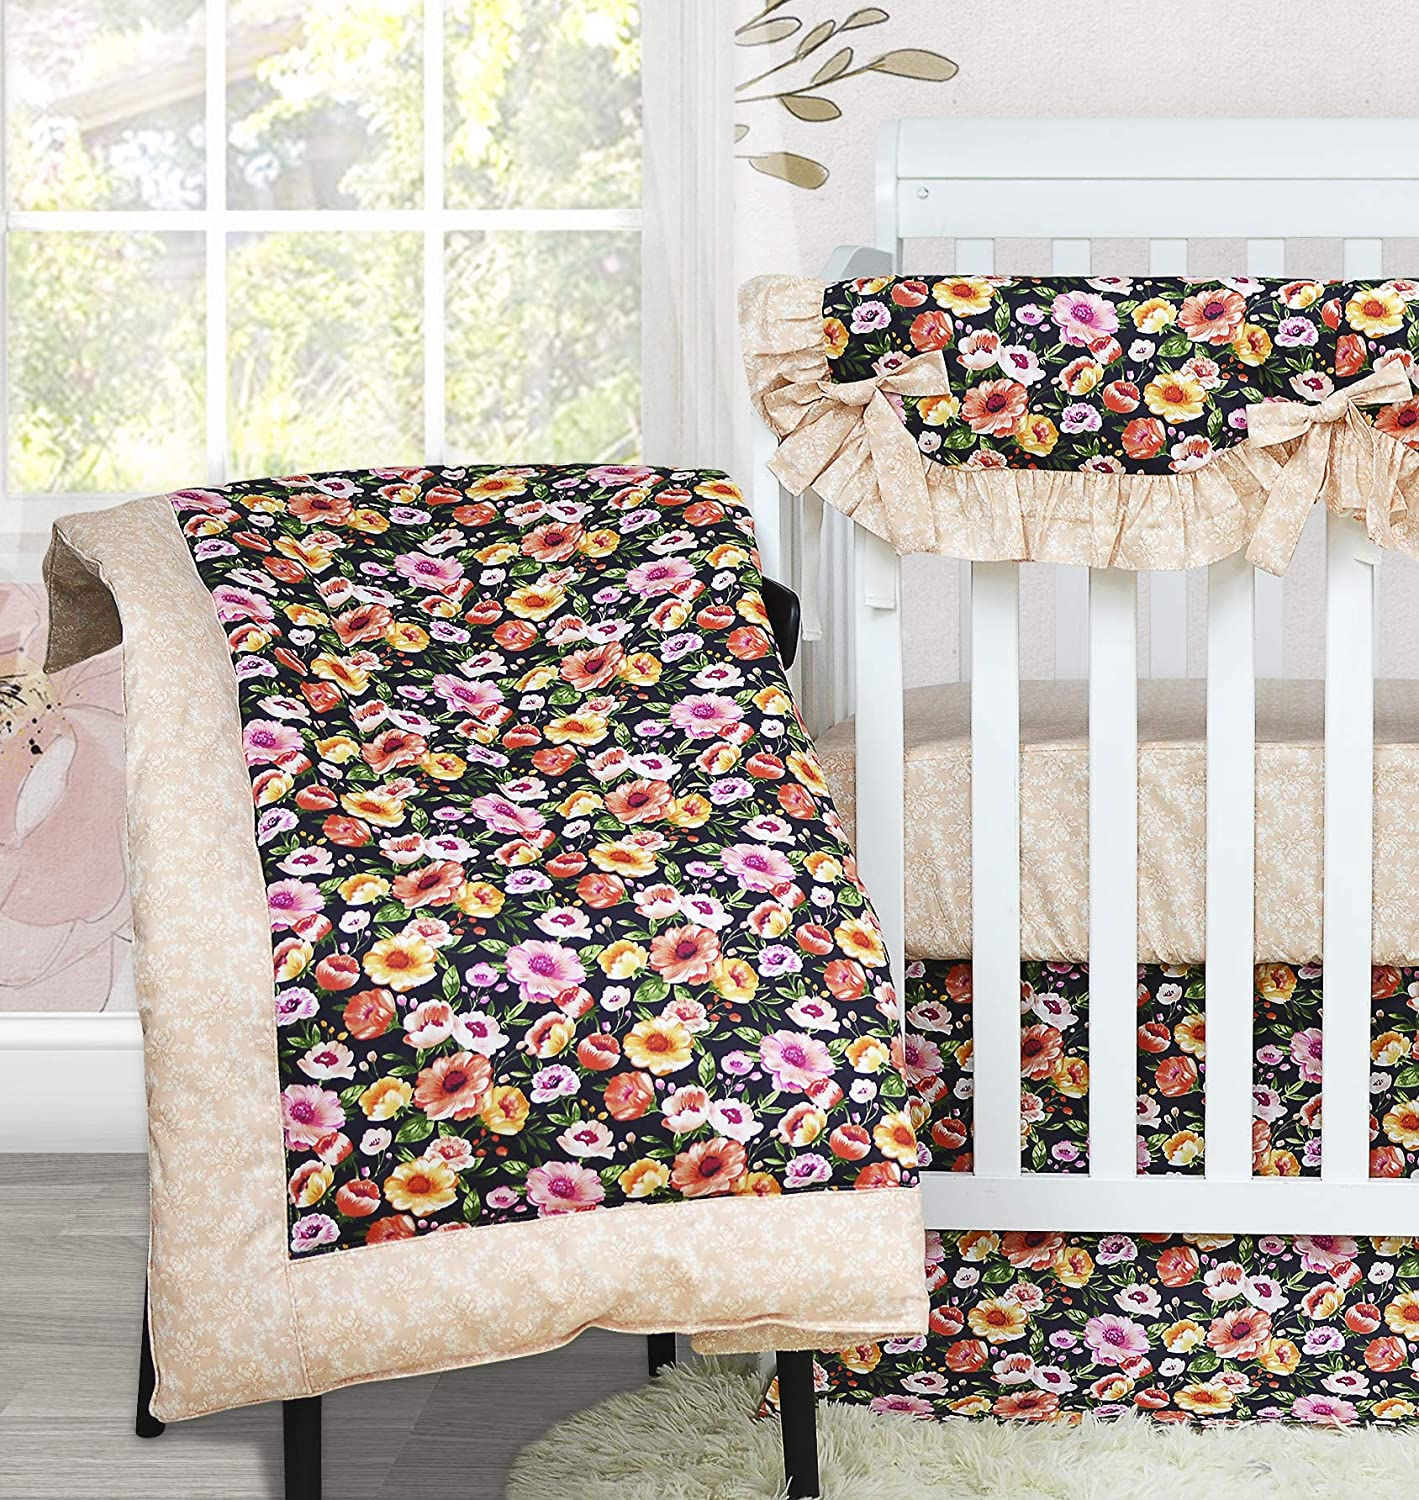 Baby Shower Gift Brandream Baby Girls Crib Bedding Sets with Bumper Pad 11 Pieces Vintage Nursery Floral Bedding 100/% Cotton Chic Cradle Set Black//Coral